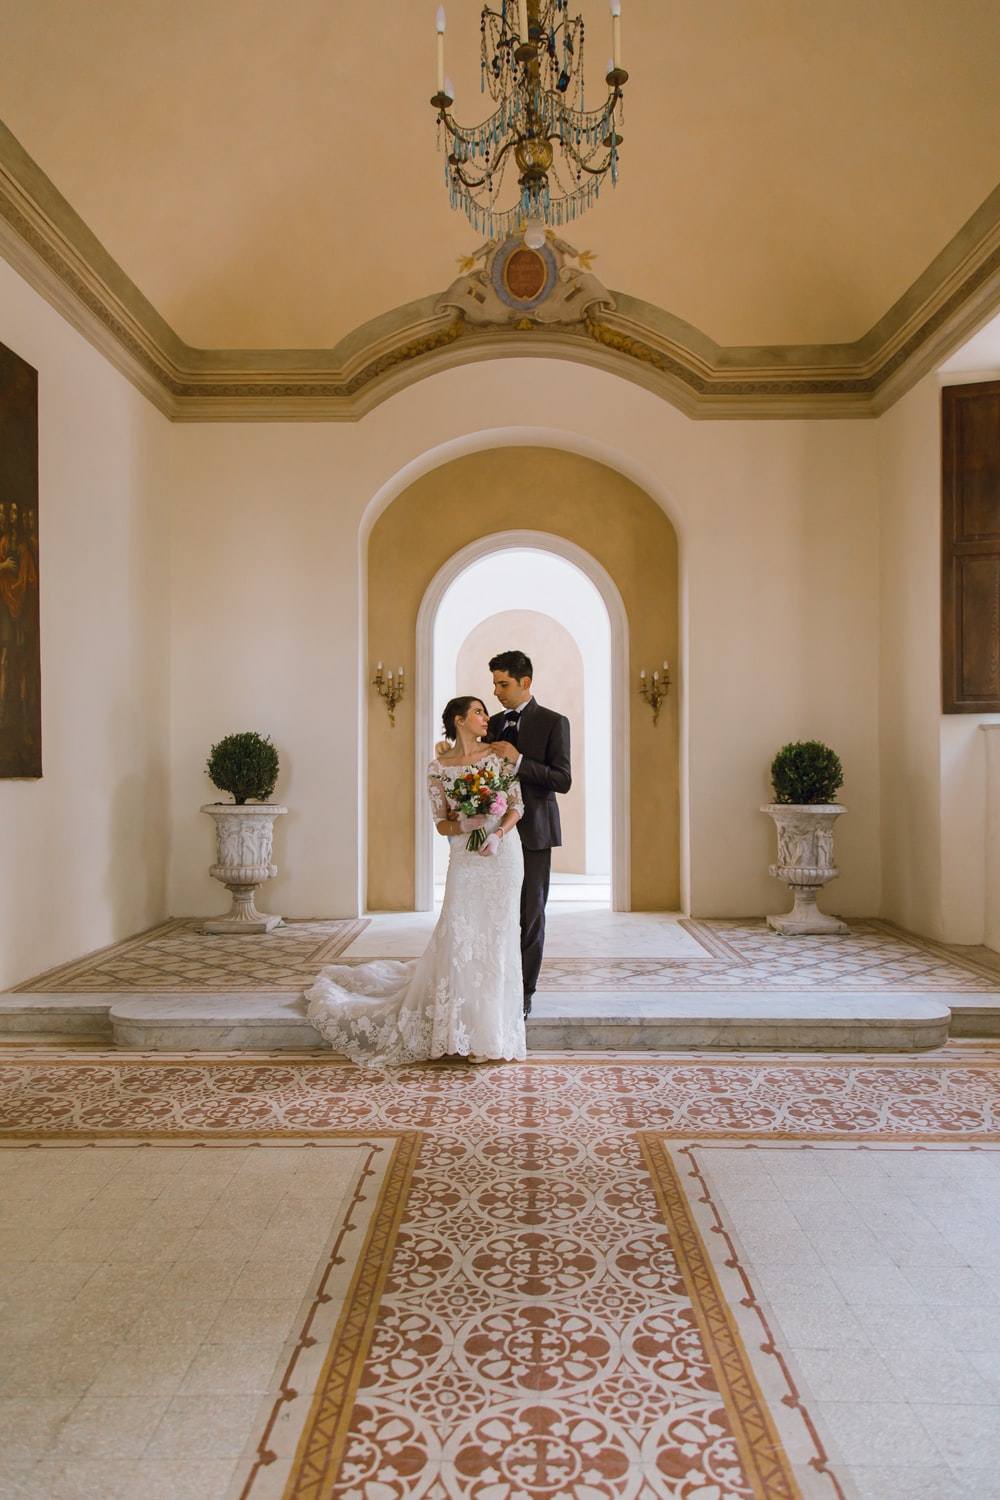 bride and groom standing on white and brown floral carpet